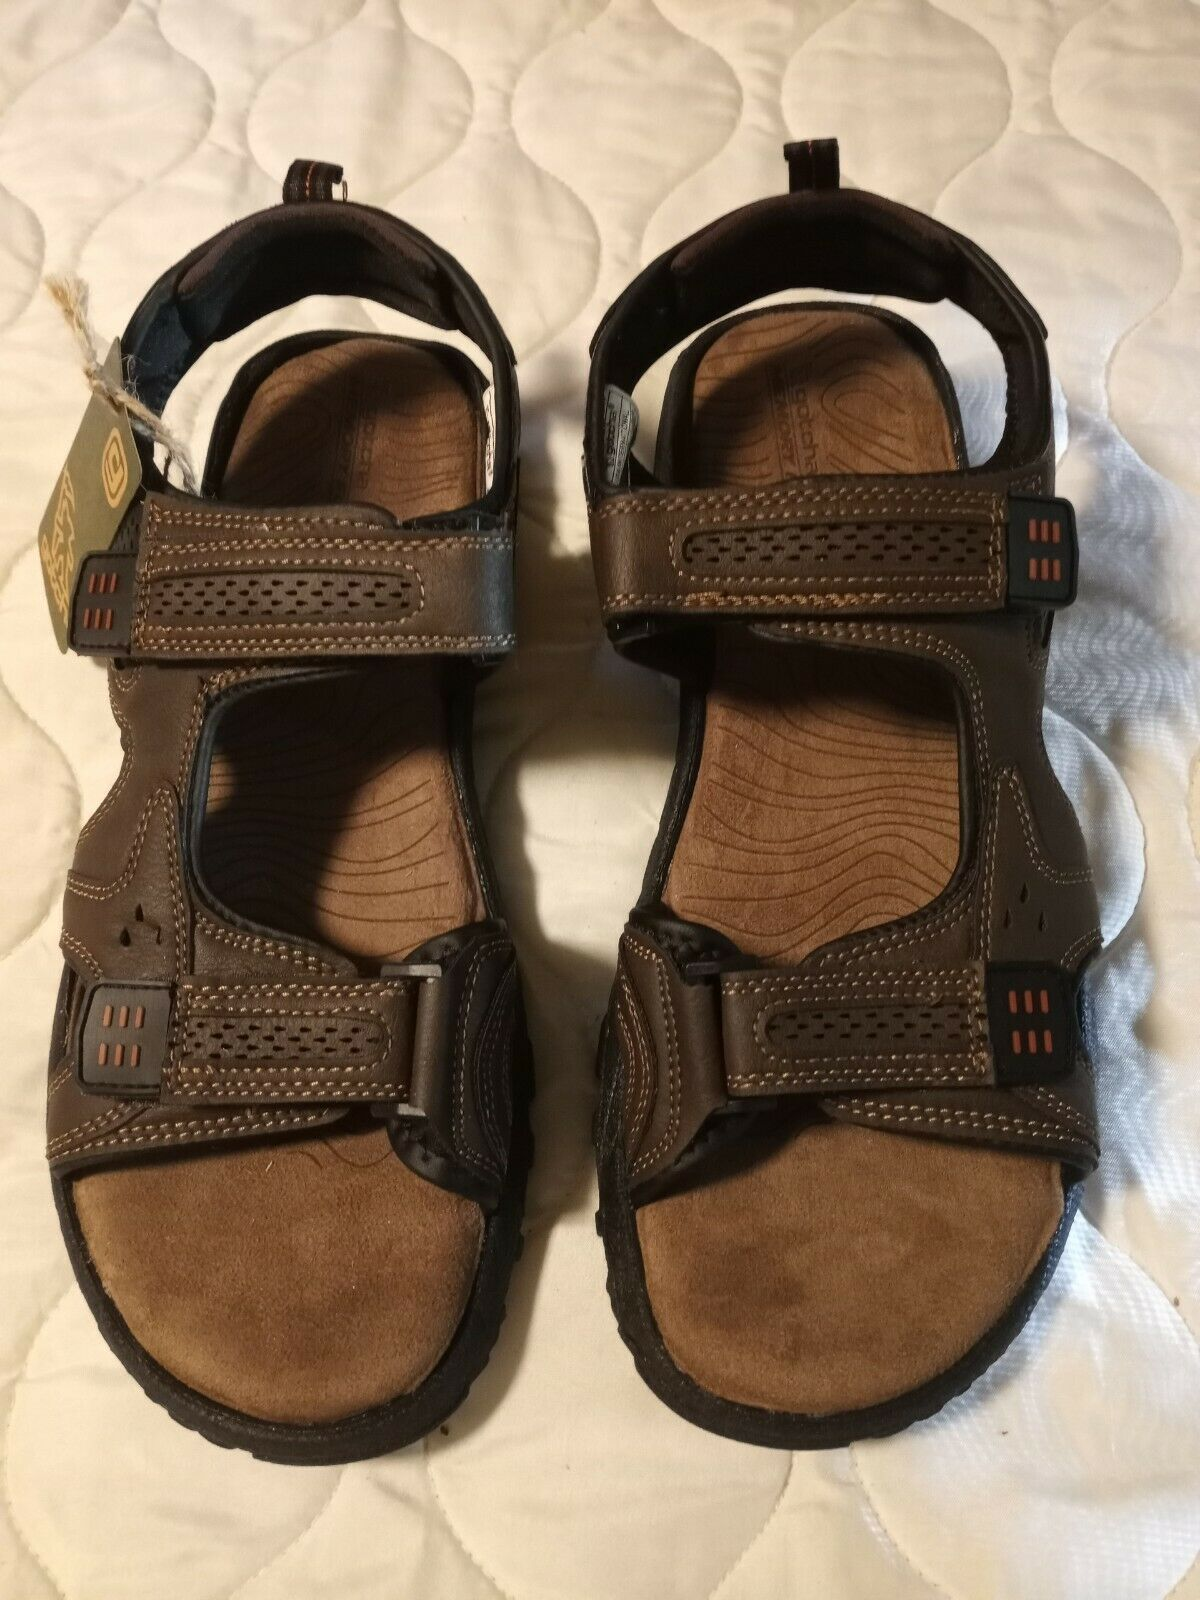 GOTCHA Quest SIZE 12 SANDALS Brown New in Box